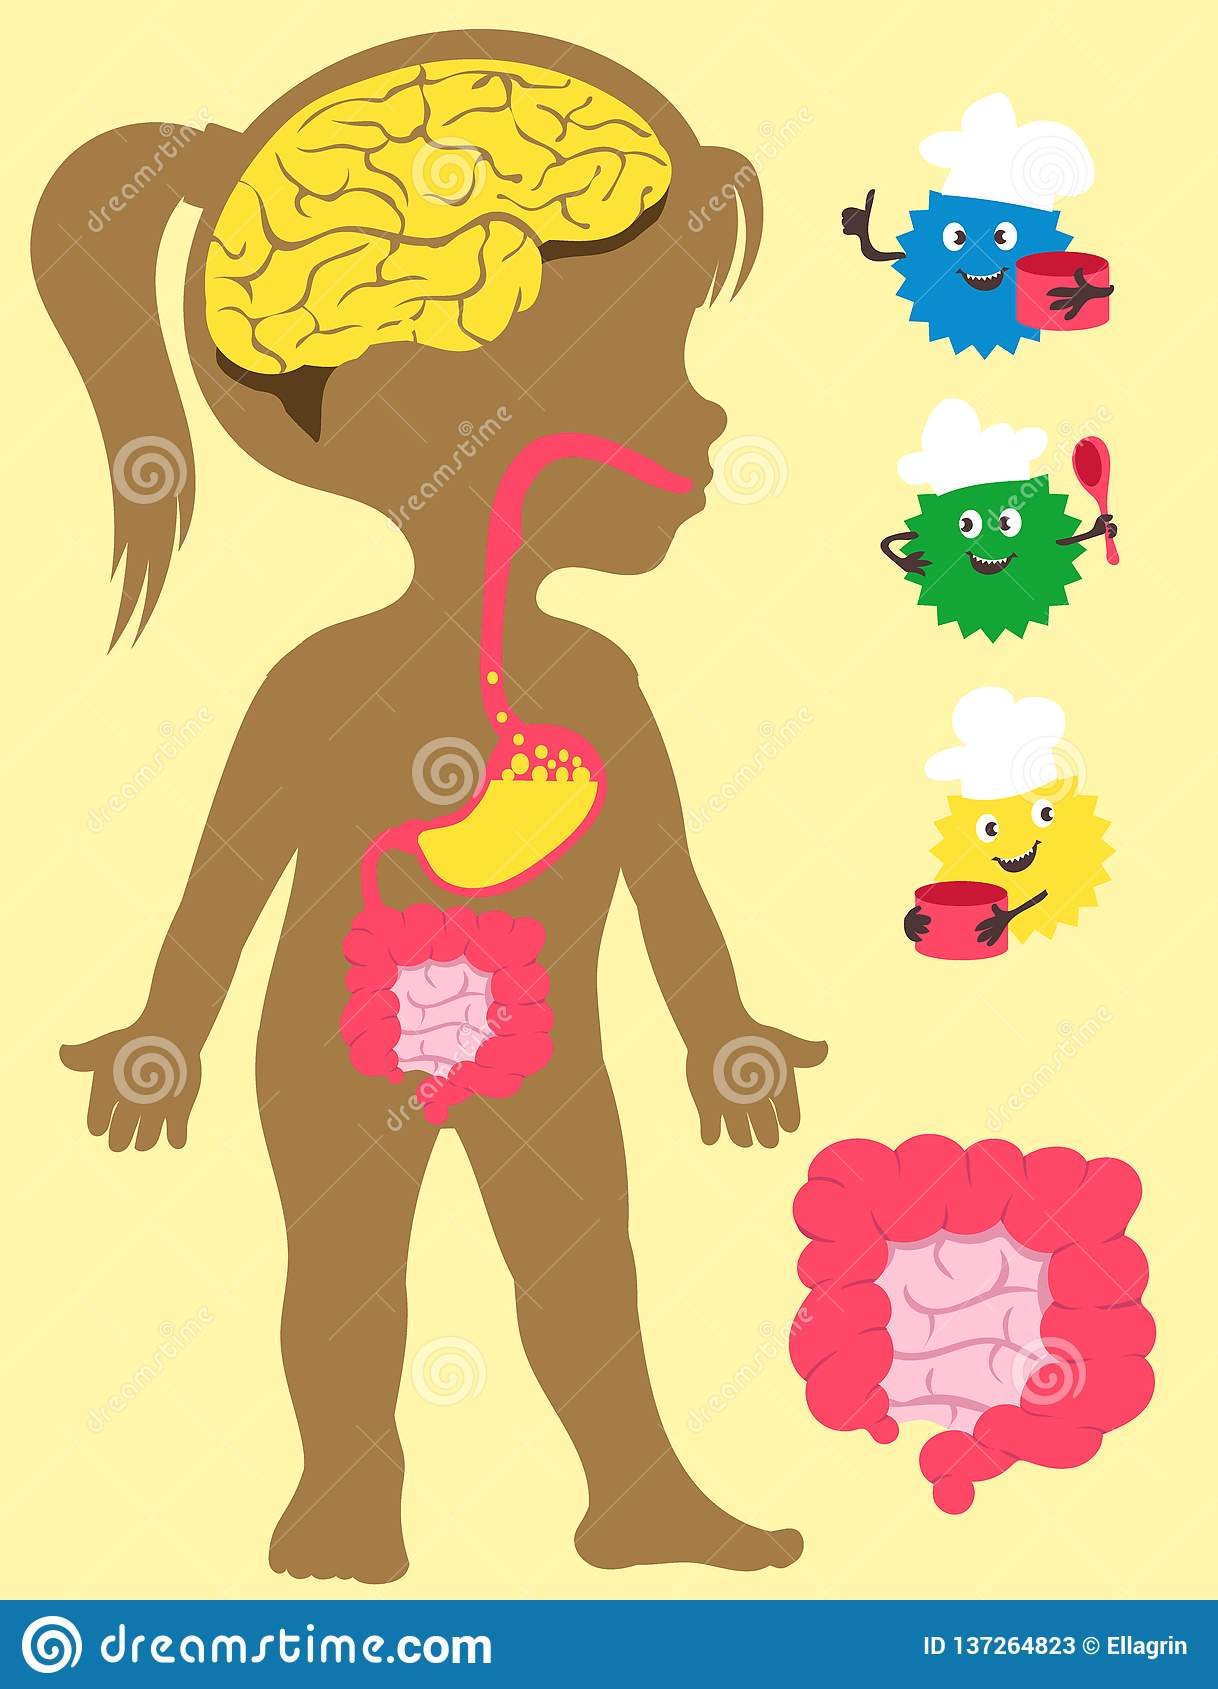 Children Anatomy With Digestive System Royalty Free Stock